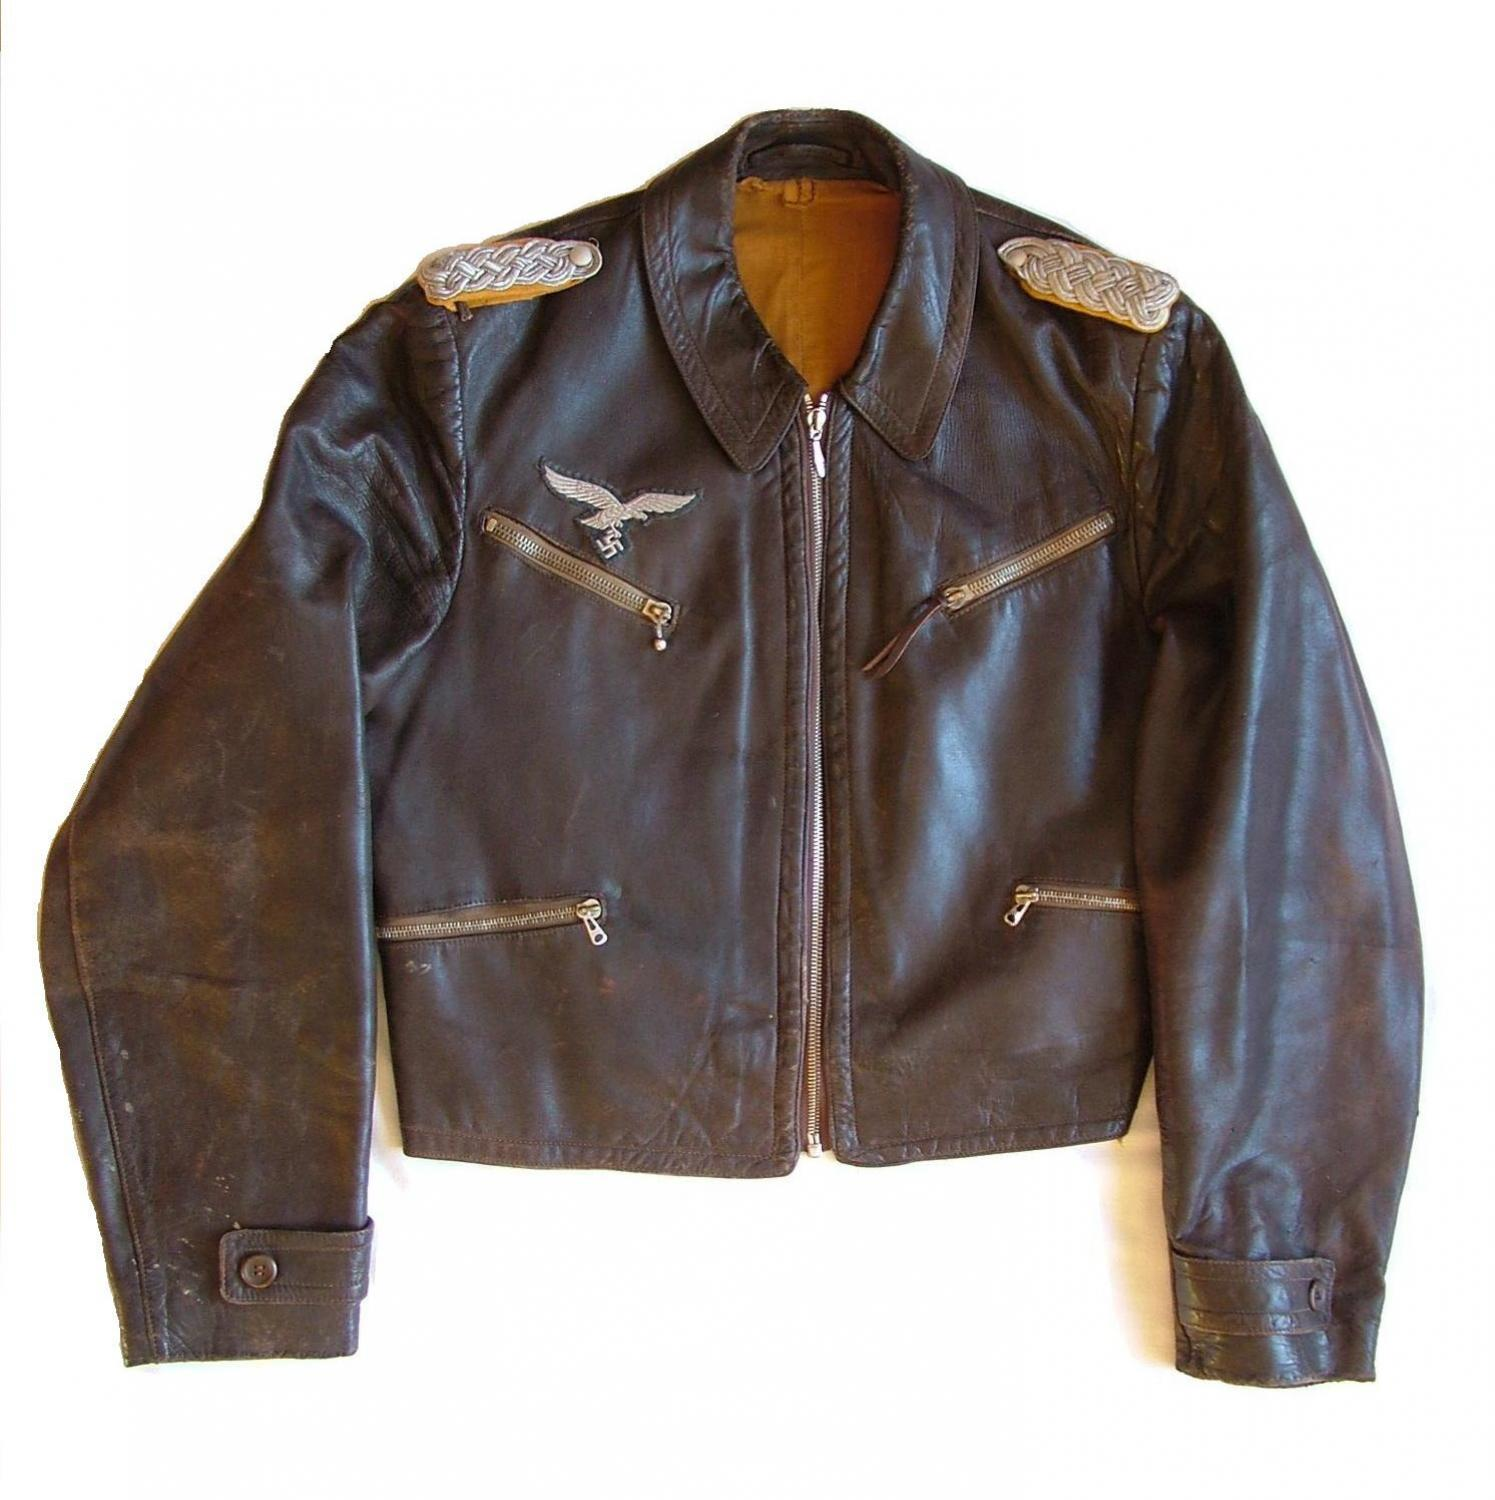 Luftwaffe flying jacket